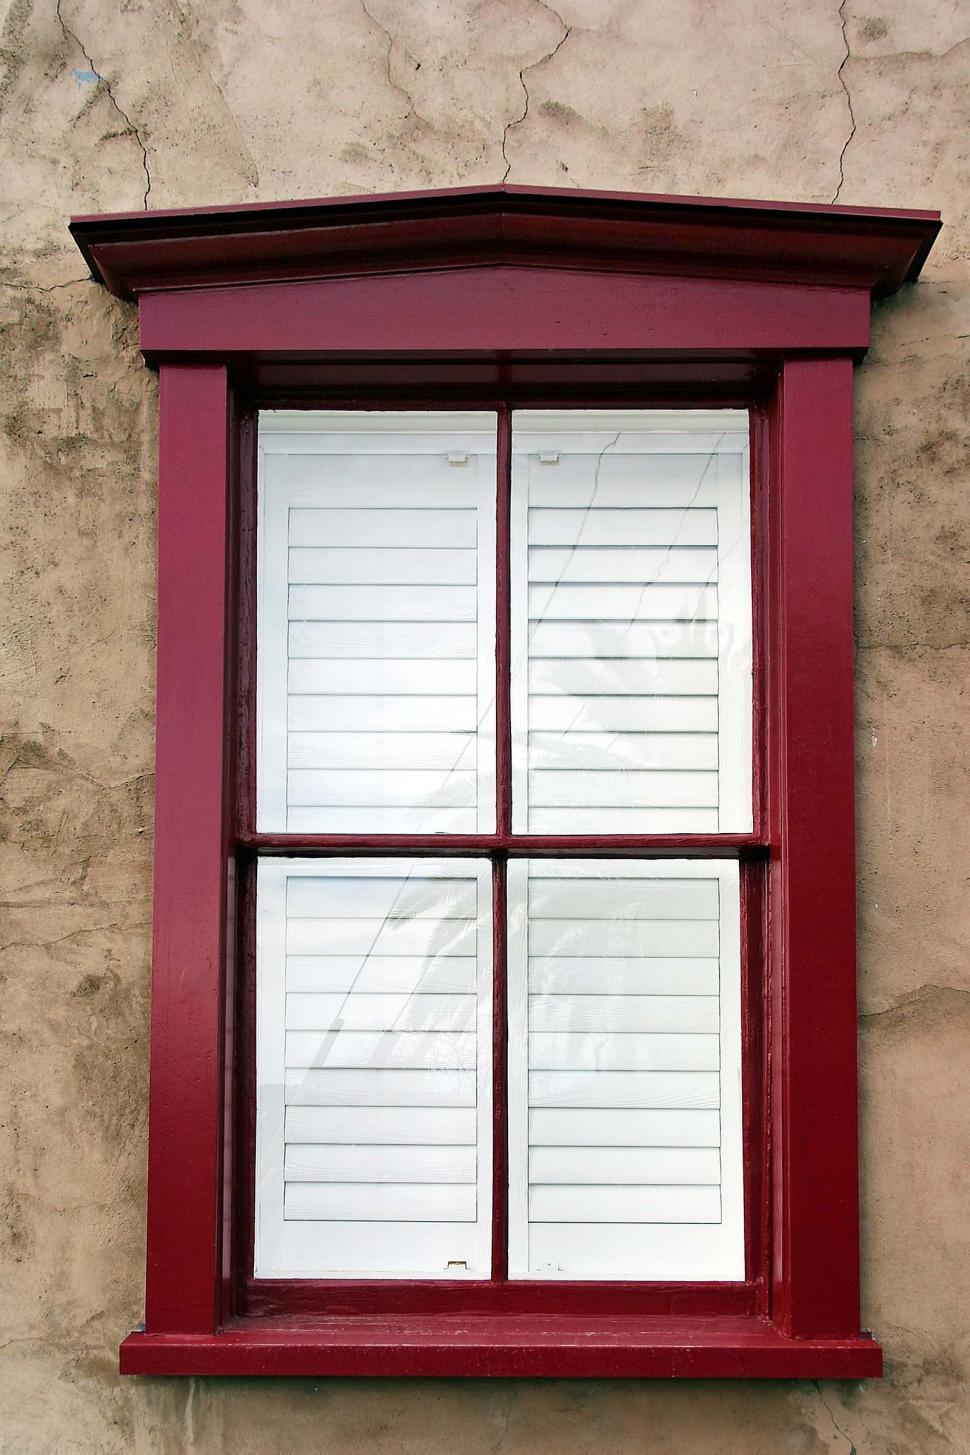 Download Free Stock HD Photo of Modern window, old wall Online